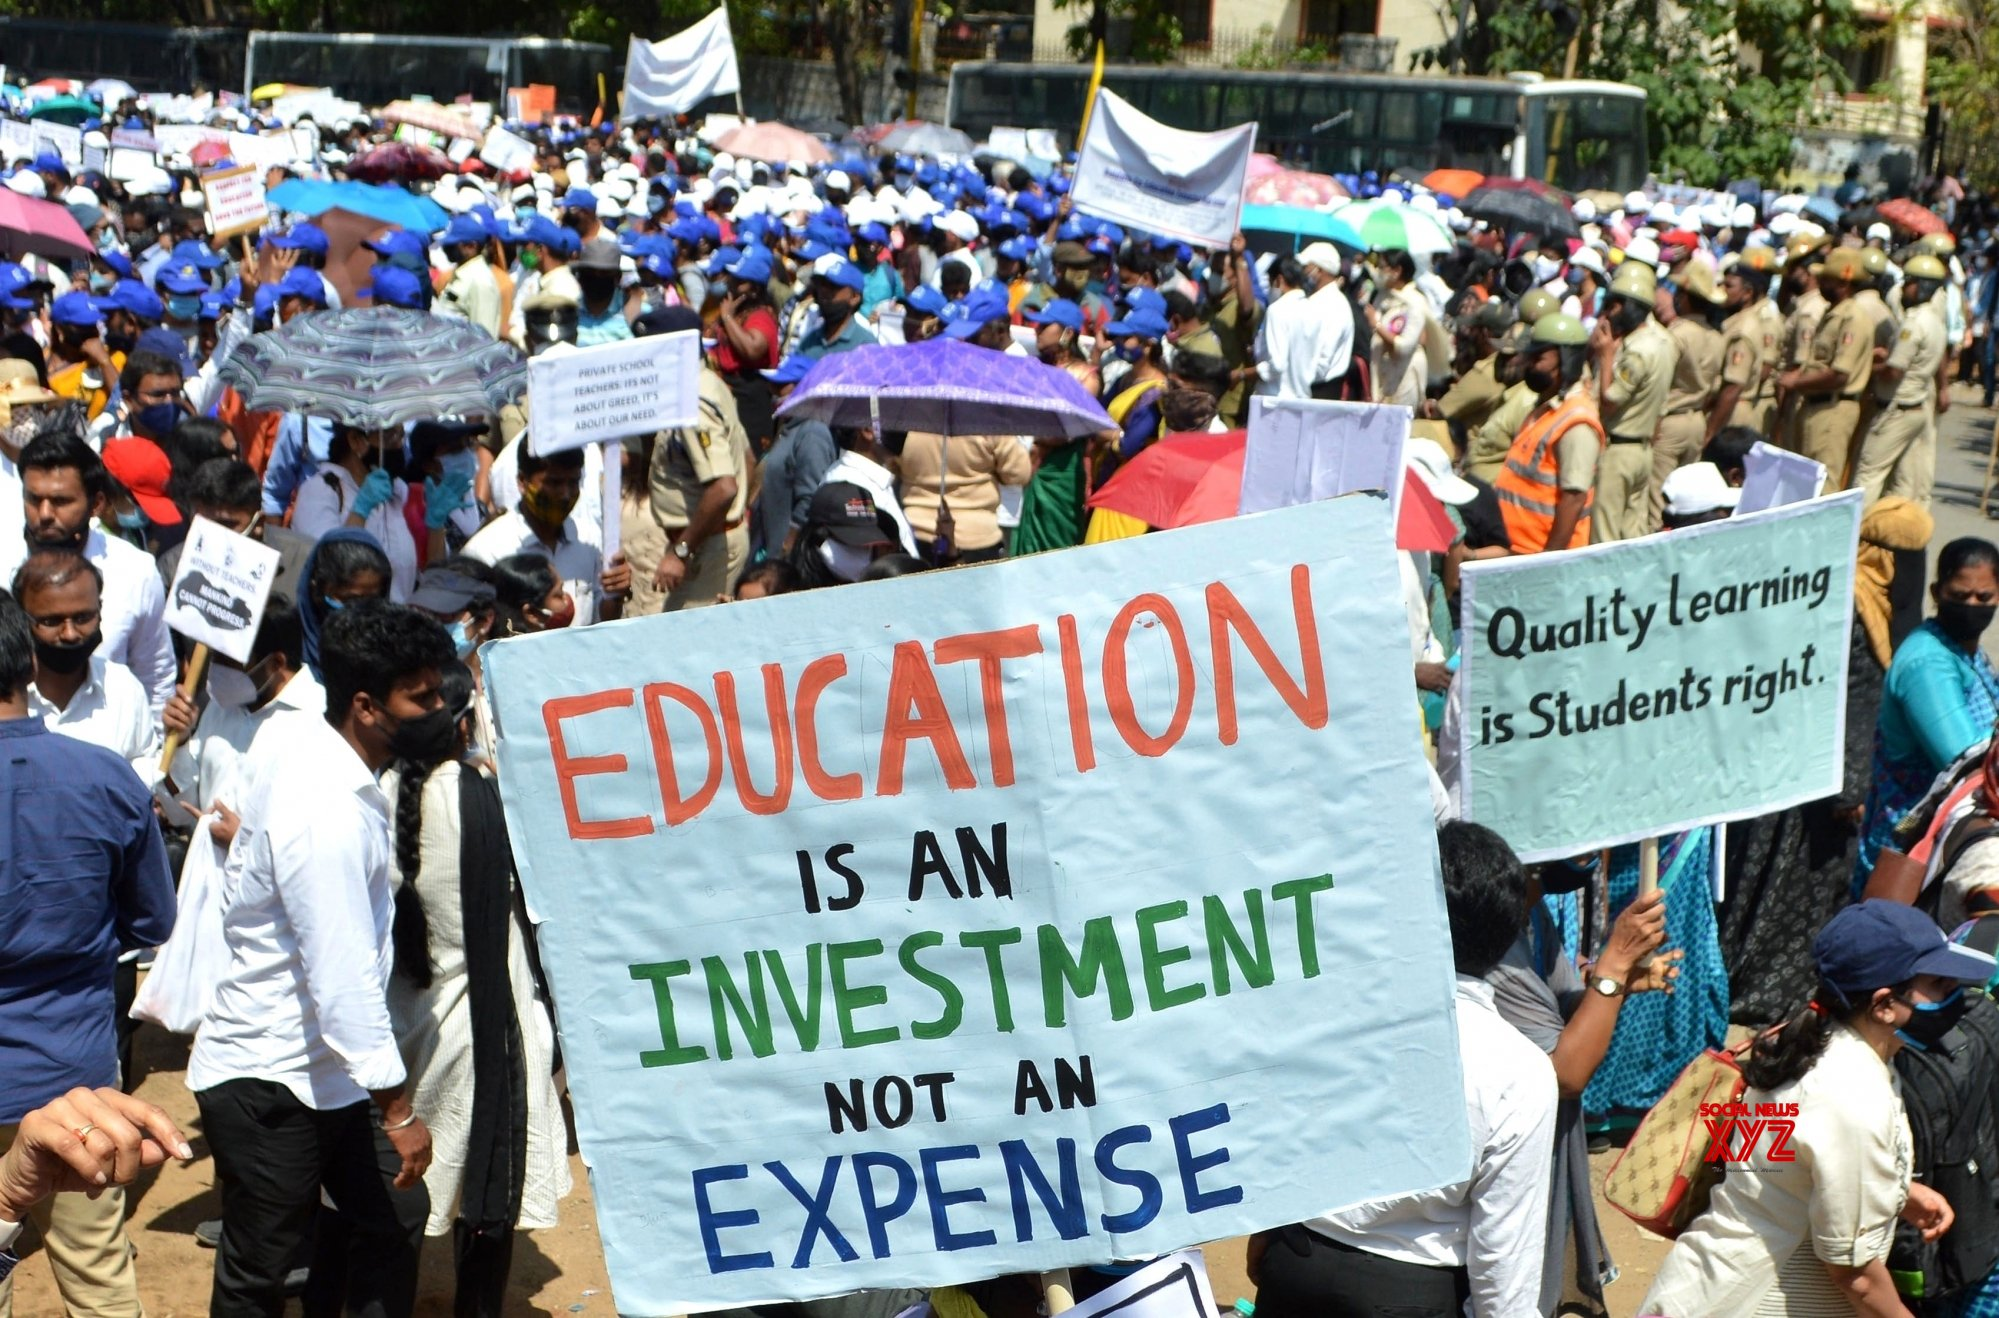 Bengaluru: Members of the Karnataka Private School Managements, Teaching and Non - Teaching Staff Coordination Committee (KPMTCC) take part in a protest rally against the state governments order for private schools to charge only 70% of the tuition fees in this academic year, in Bengaluru, Karnataka on Tuesday 23rd February 2021 #Gallery